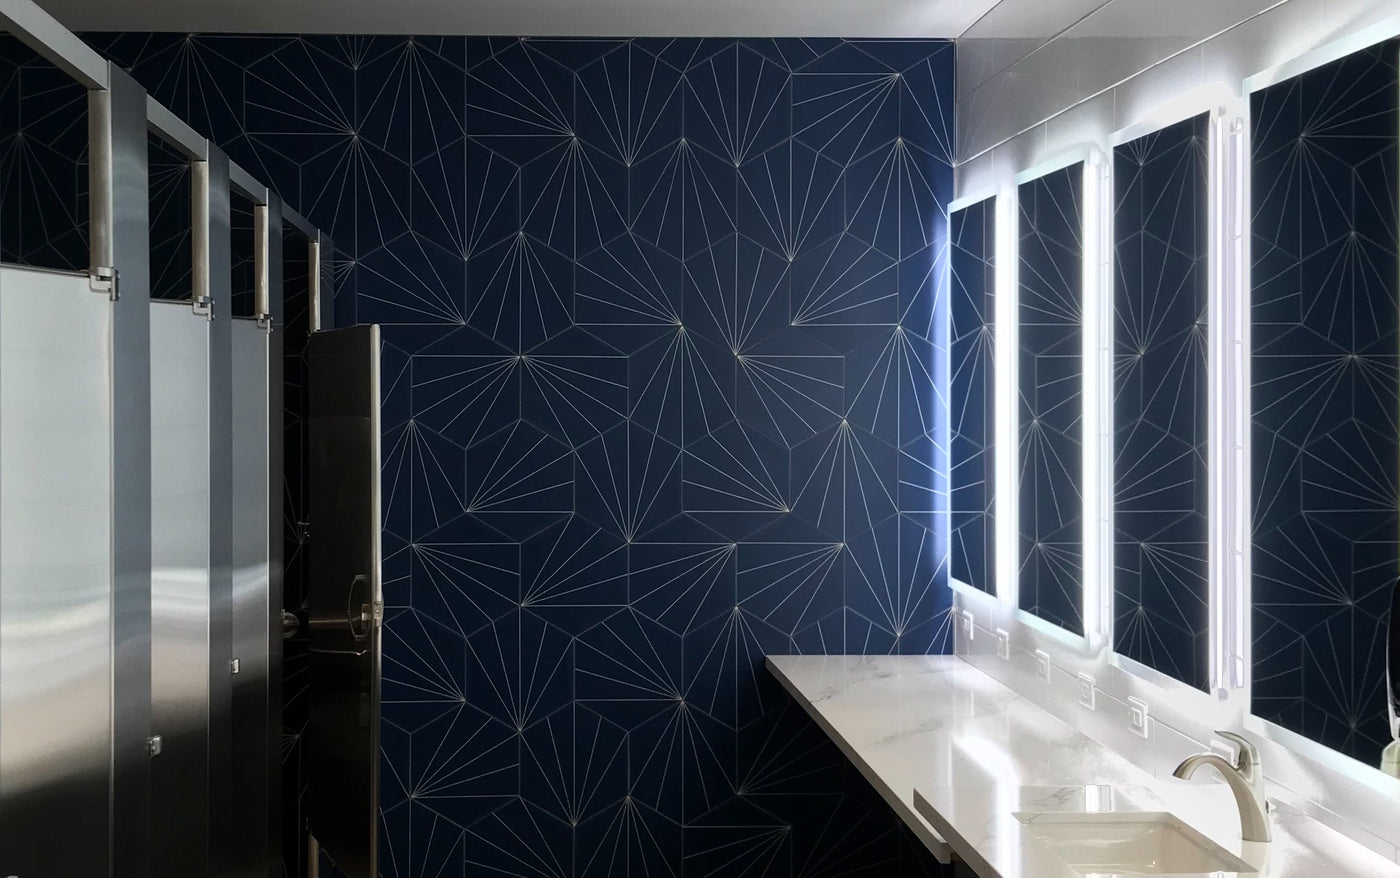 Buy Floor Bathroom Wall Tile Online Mission Stone Tile